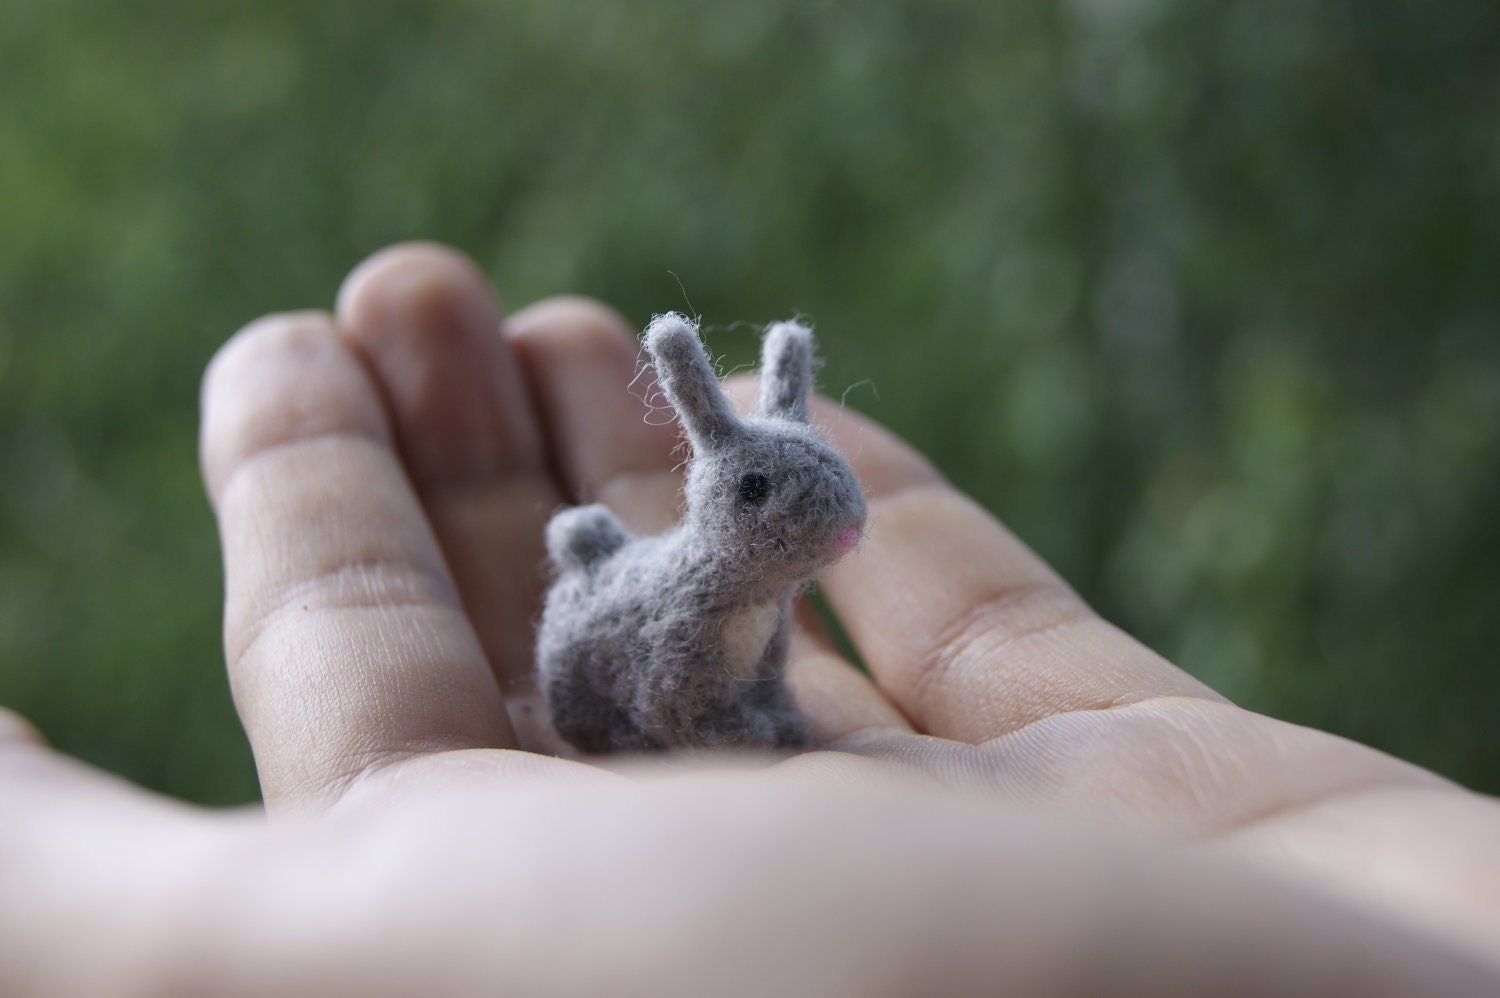 Small Toy Rabbits : Felted rabbit miniature grey felt toy soft